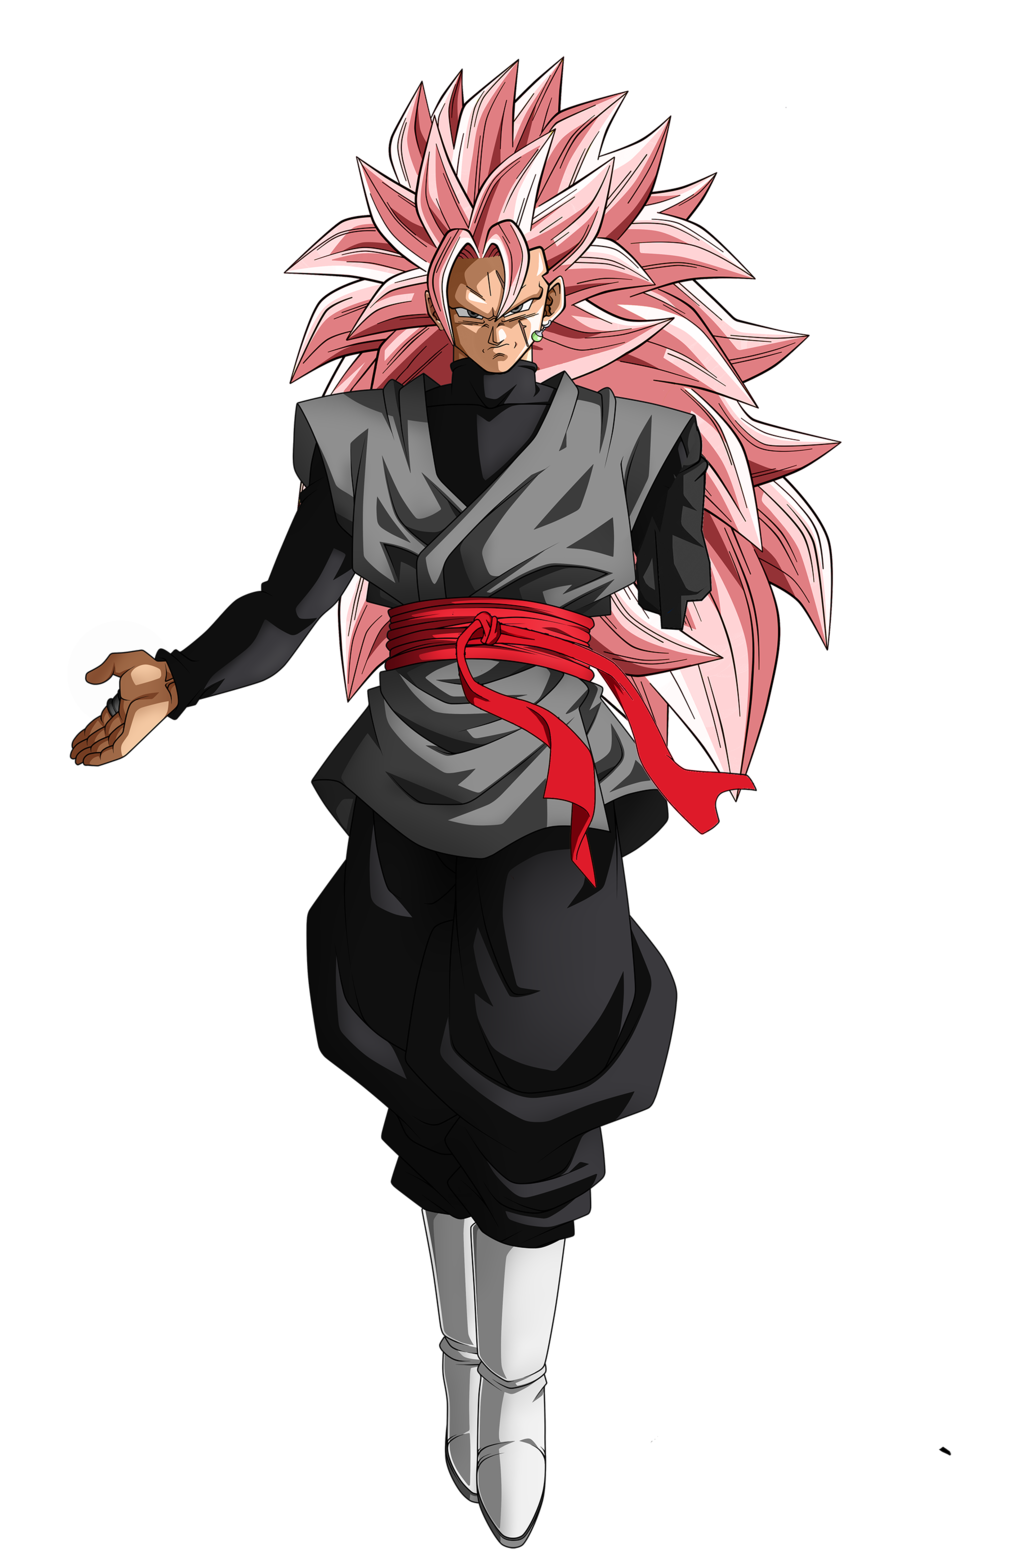 Future gohan black super saiyan 3 rose no arm by lssj2 dbz future gohan black super saiyan 3 rose no arm by lssj2 thecheapjerseys Images